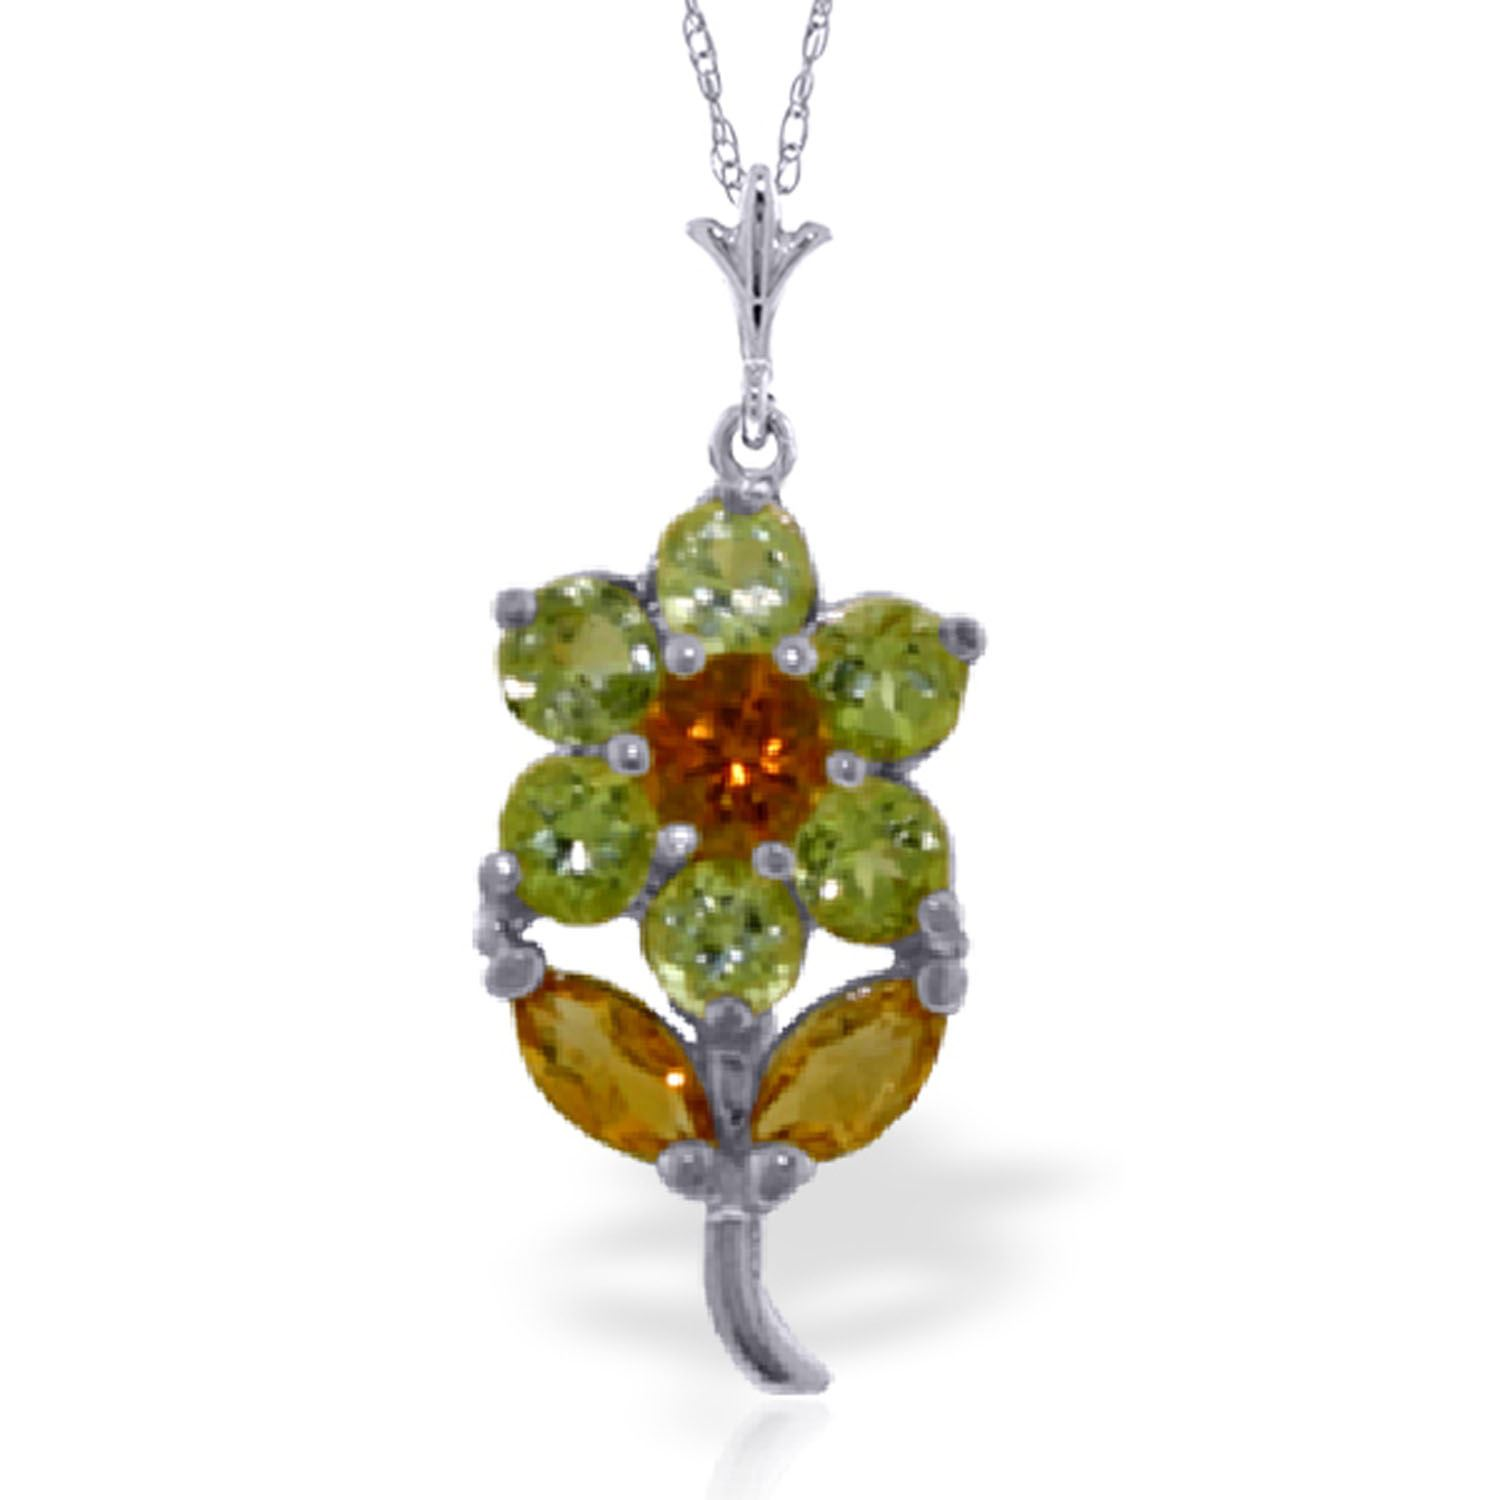 ALARRI 1.06 Carat 14K Solid White Gold Flower Necklace Peridot Citrine with 18 Inch Chain Length